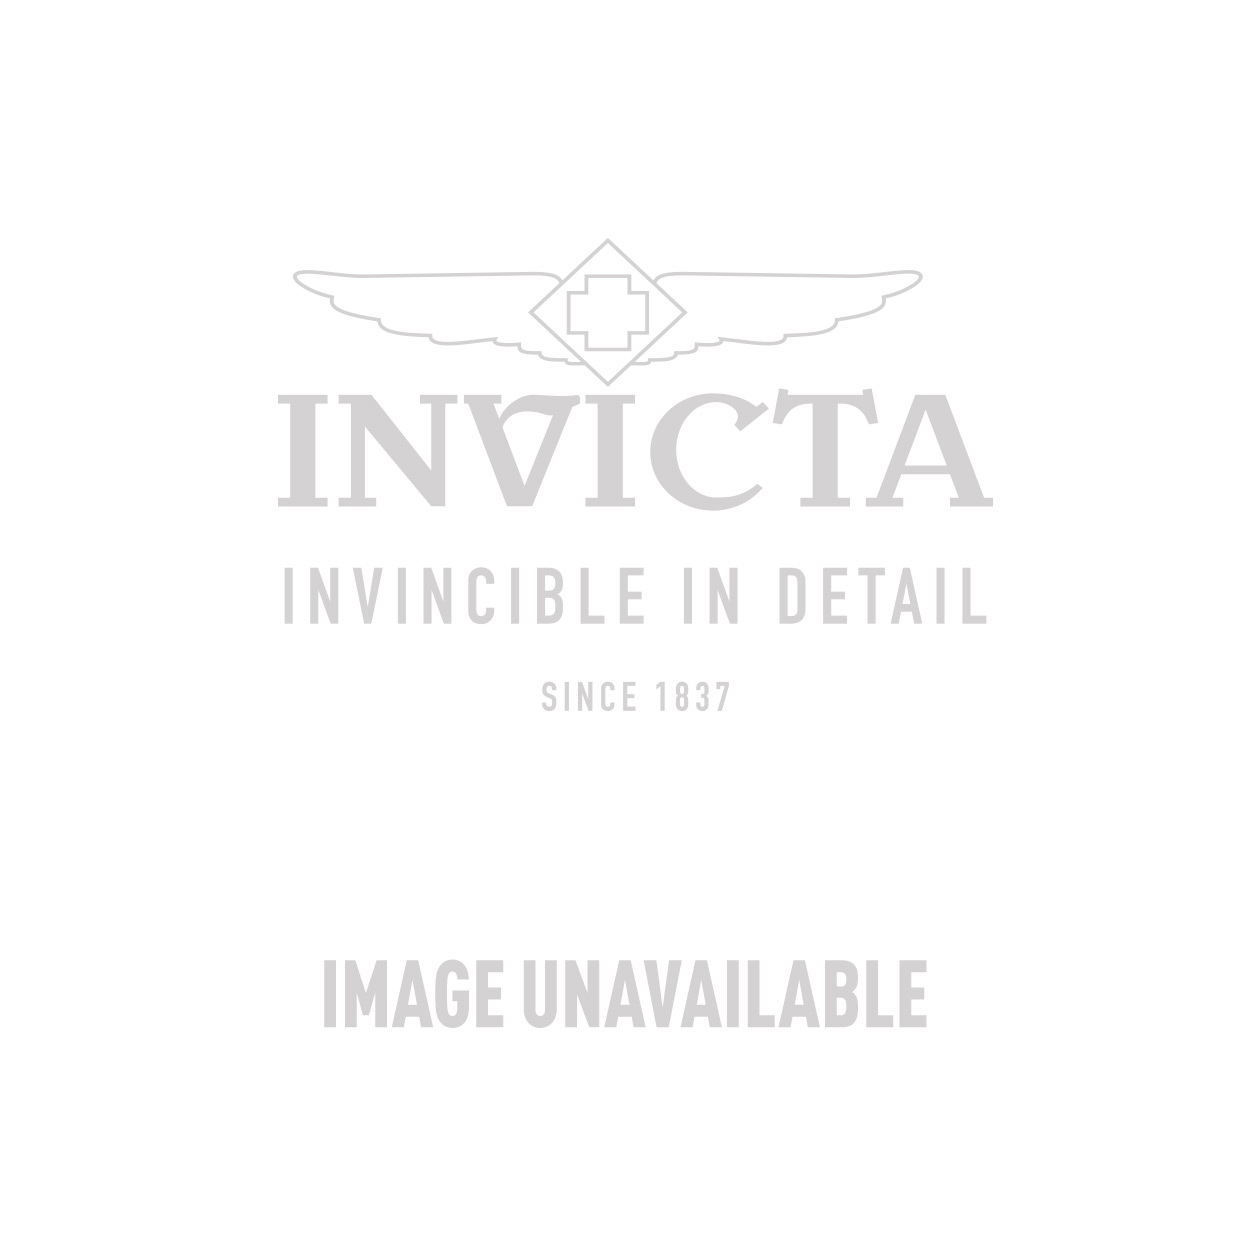 Invicta I-Force Quartz Watch - Gold case with Gold tone Stainless Steel band - Model 90164